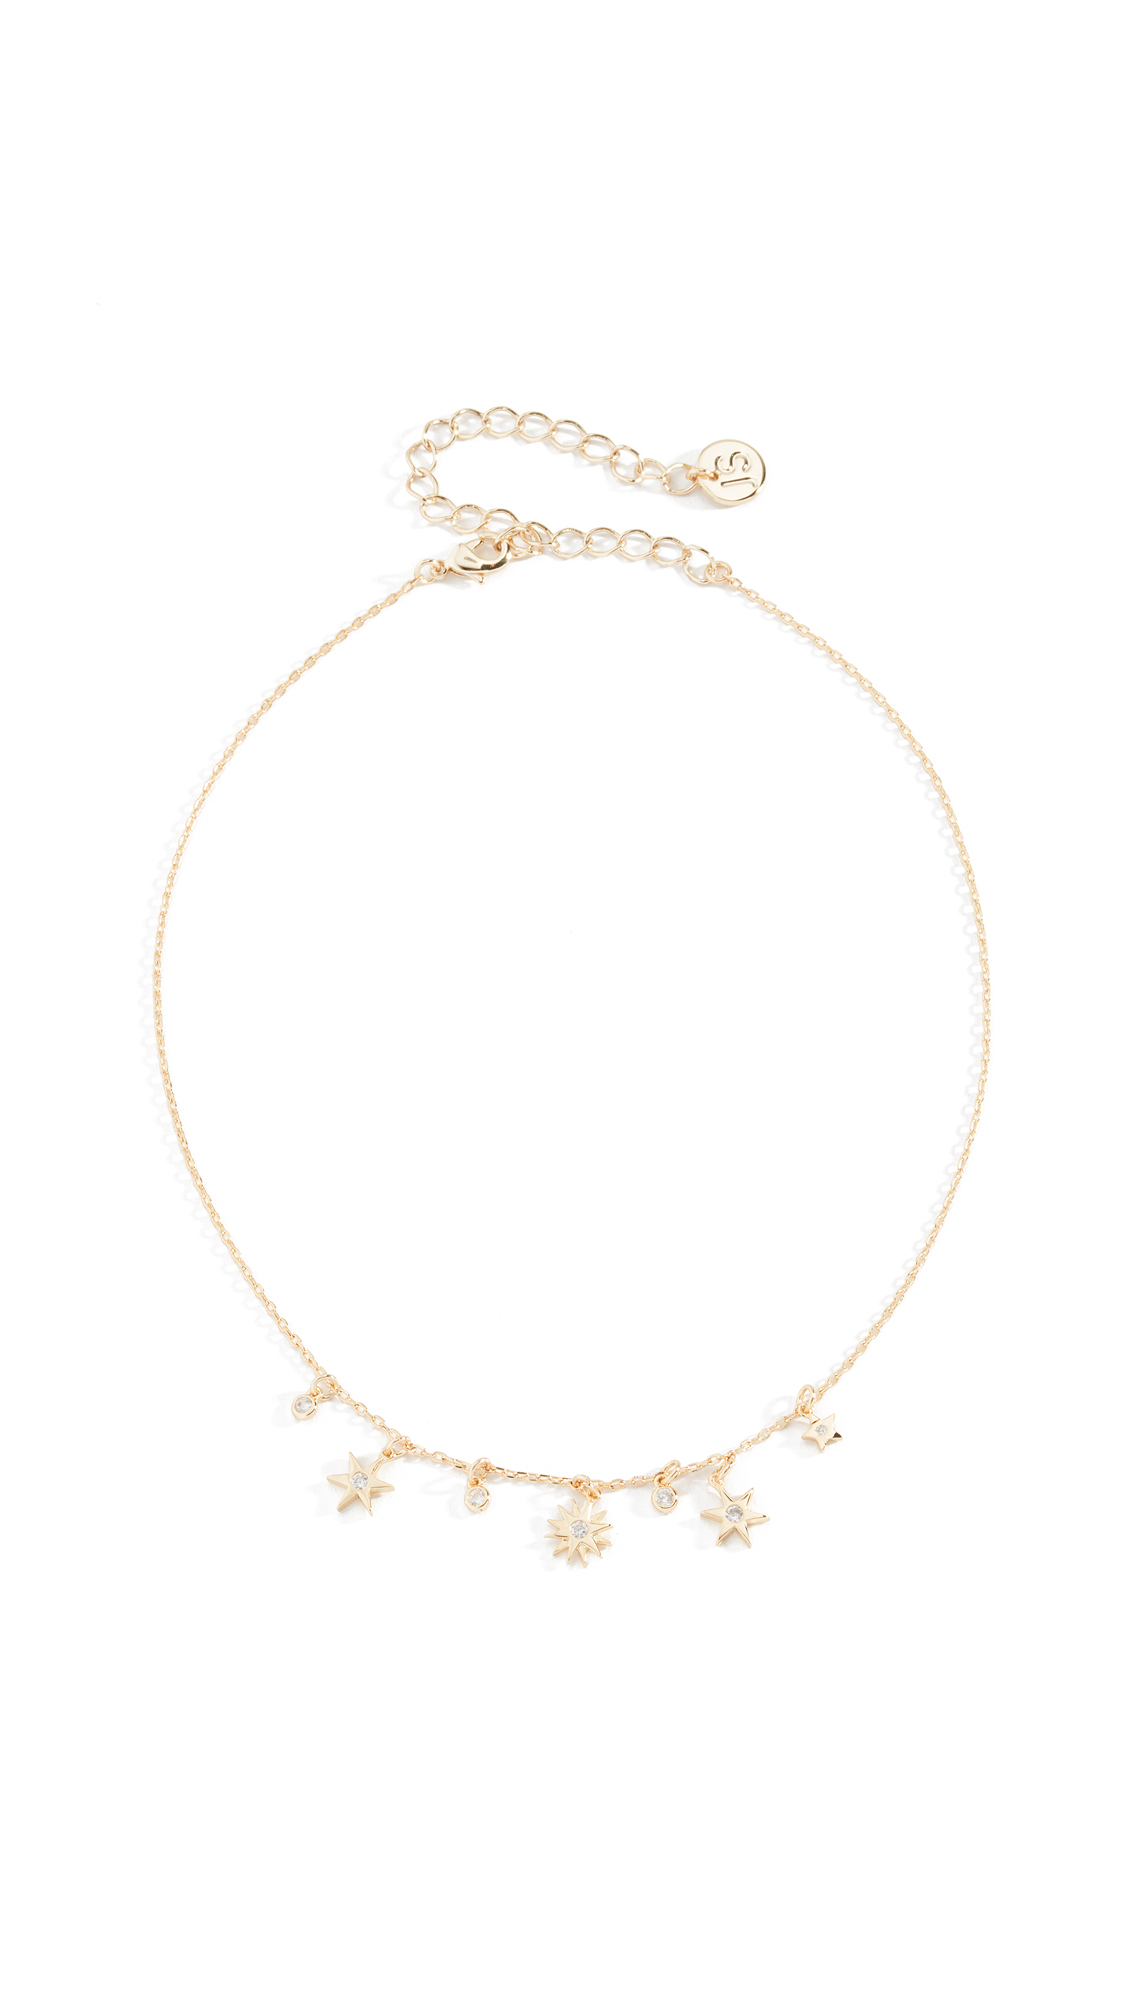 STAR BRIGHT CHOKER NECKLACE